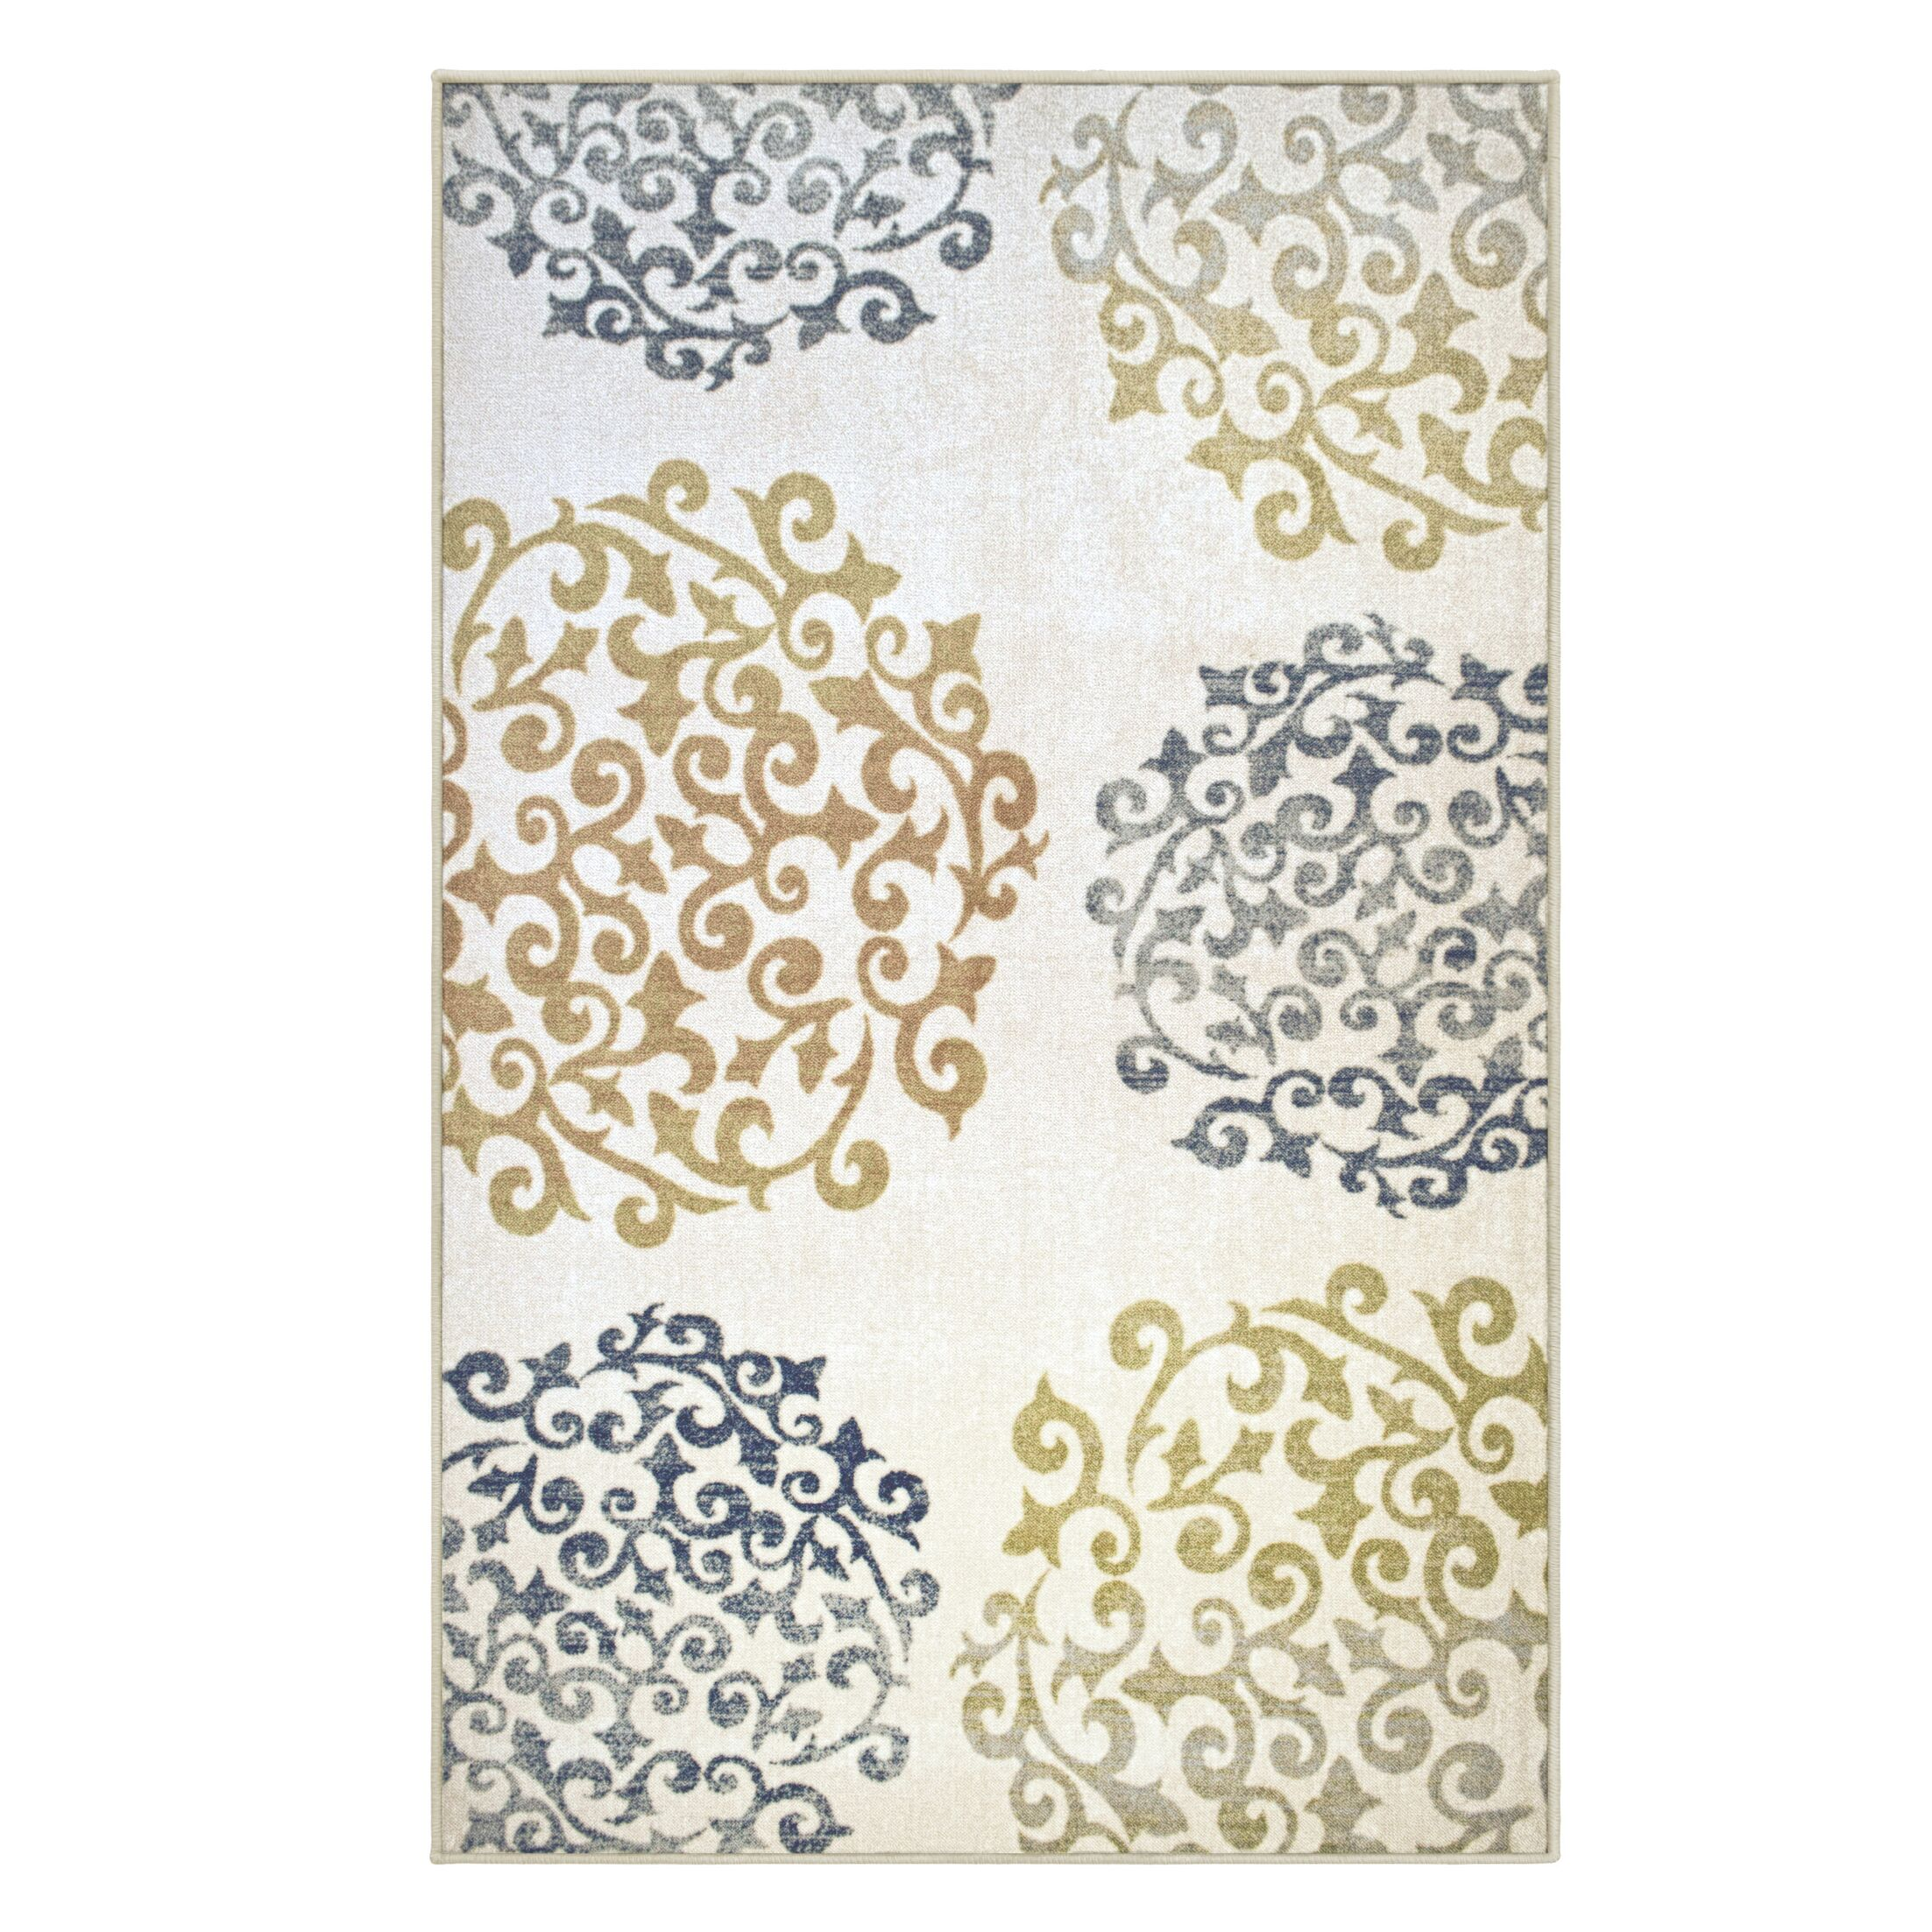 Lueras Printed Non-Slip Beige Area Rug Rug Size: Rectangle 5' x 8'